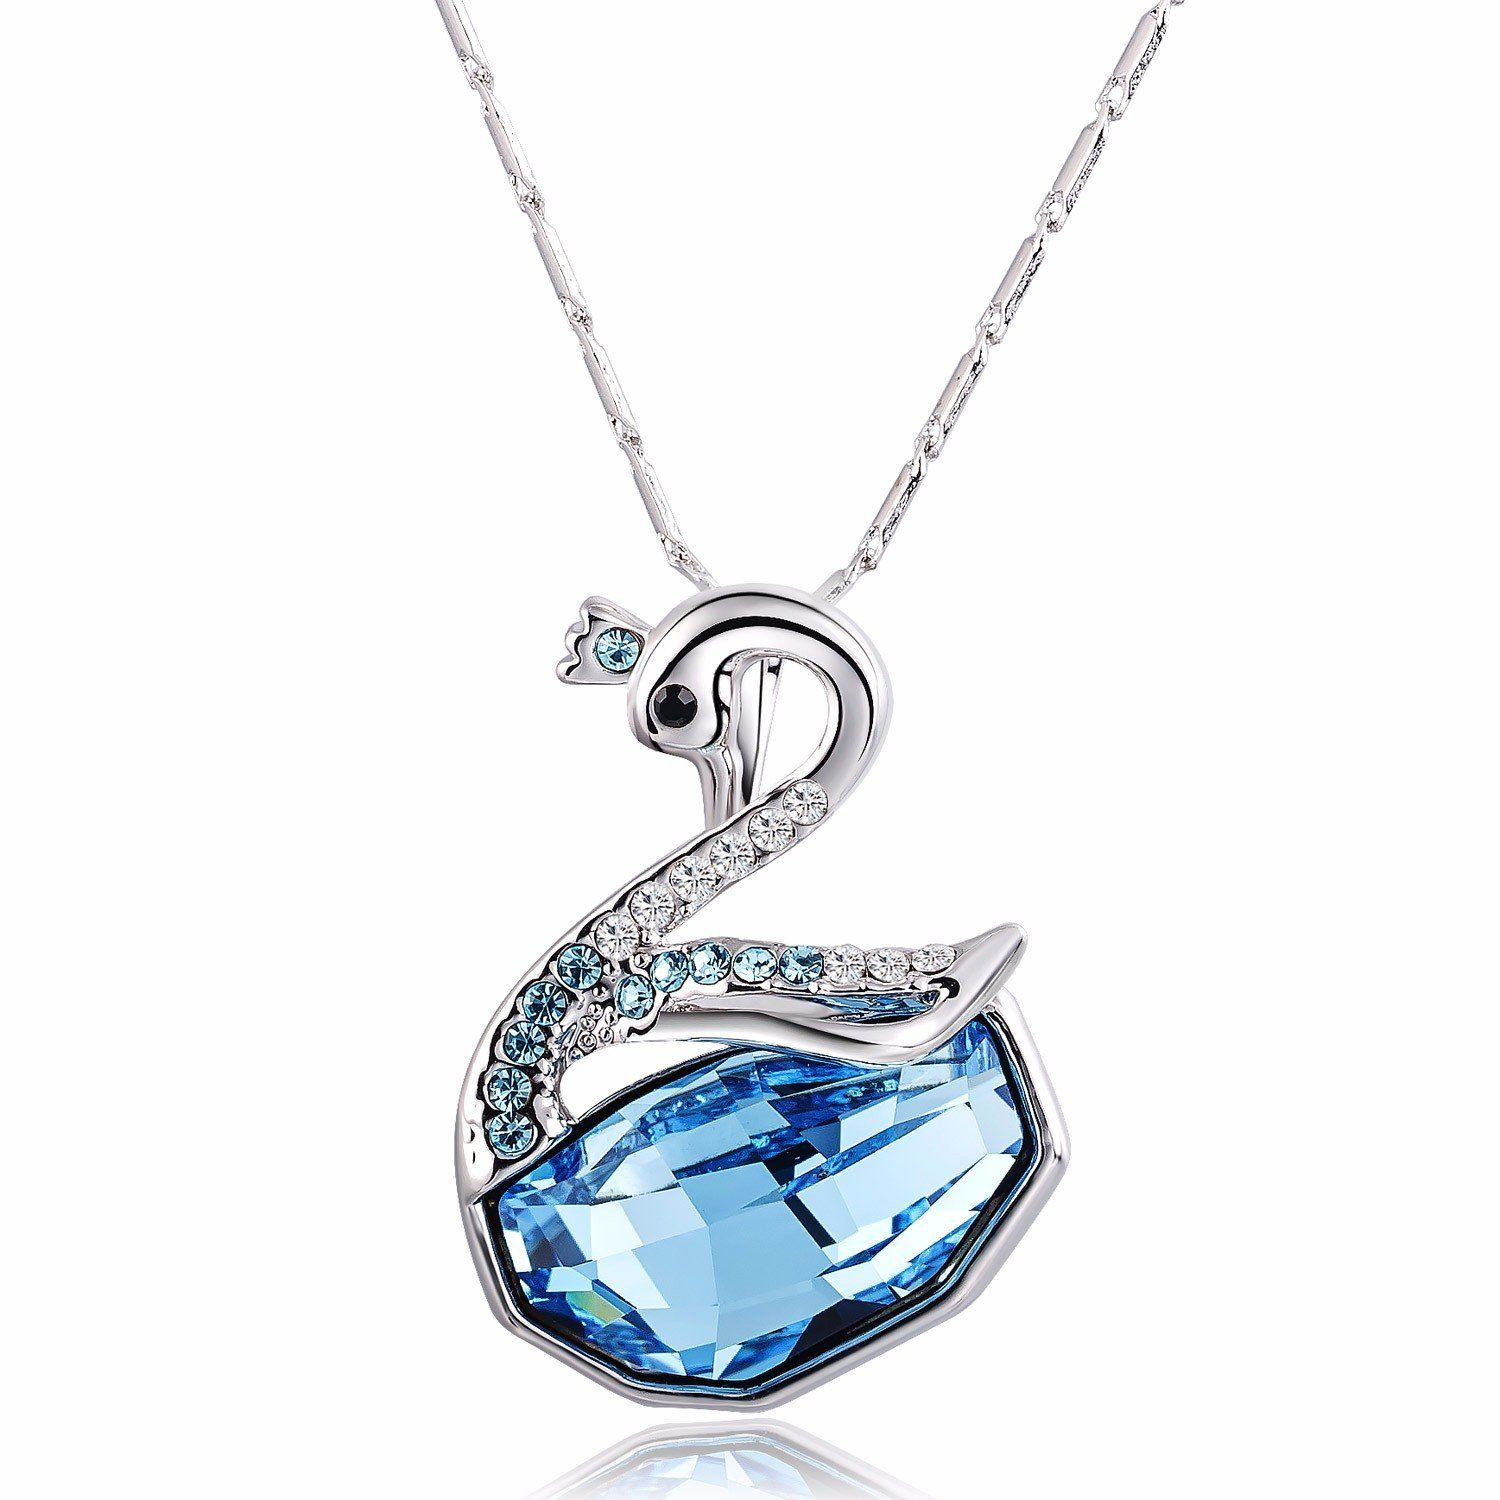 Stunning Silver Gold Blue Swan Pendant Women White Topaz Crystal Chain Necklace